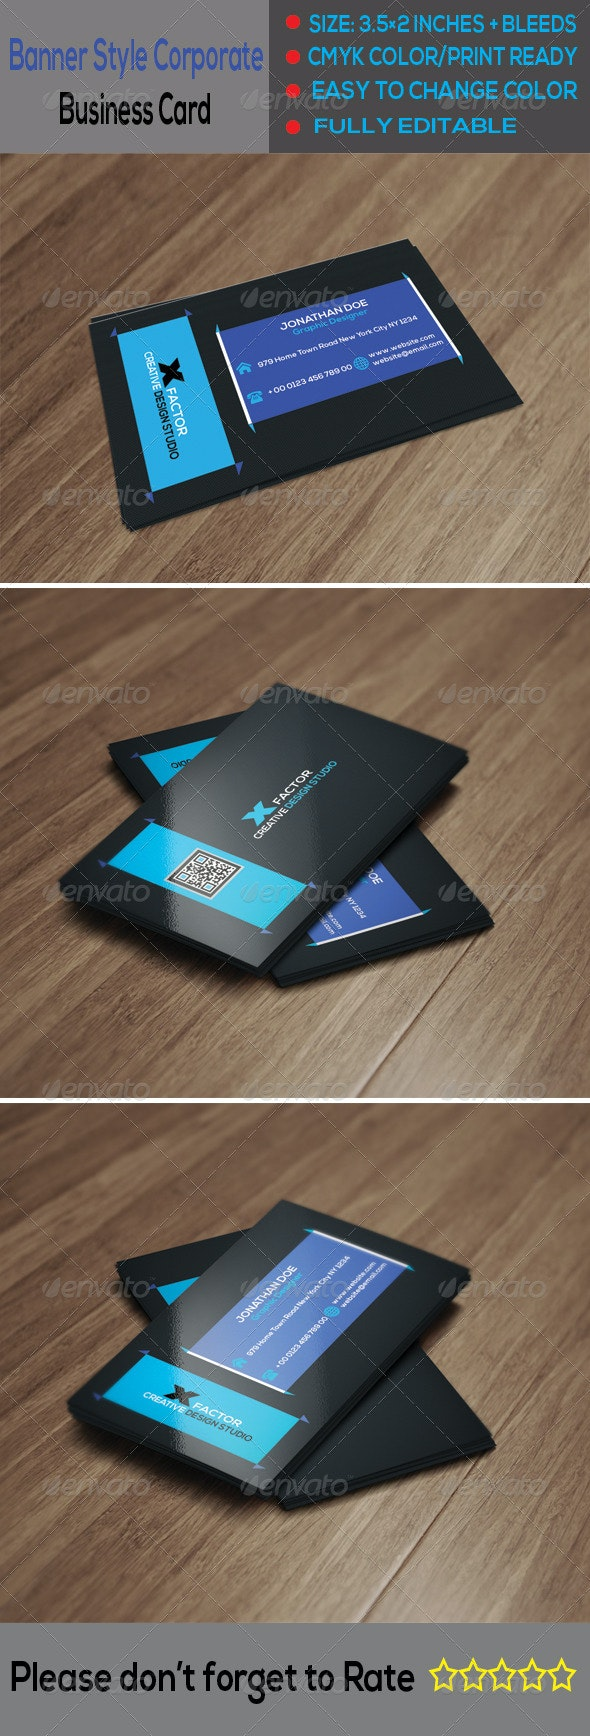 Banner Style Corporate Business Card 2 - Corporate Business Cards